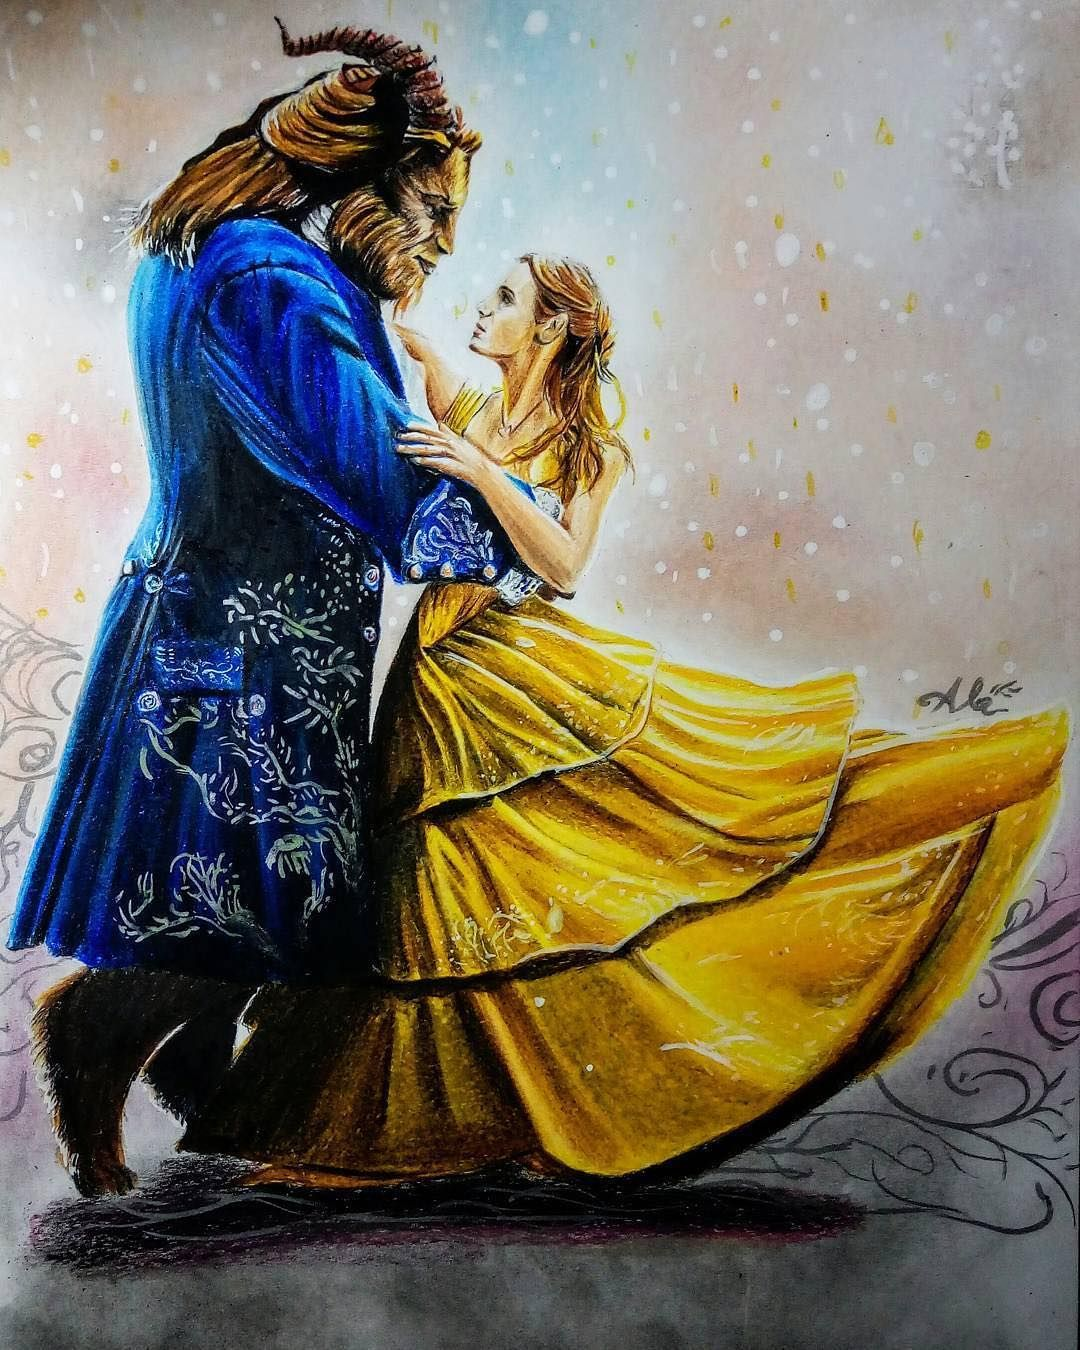 A Stunning Drawing For The Ballroom Dancing Scene Of Belle And The